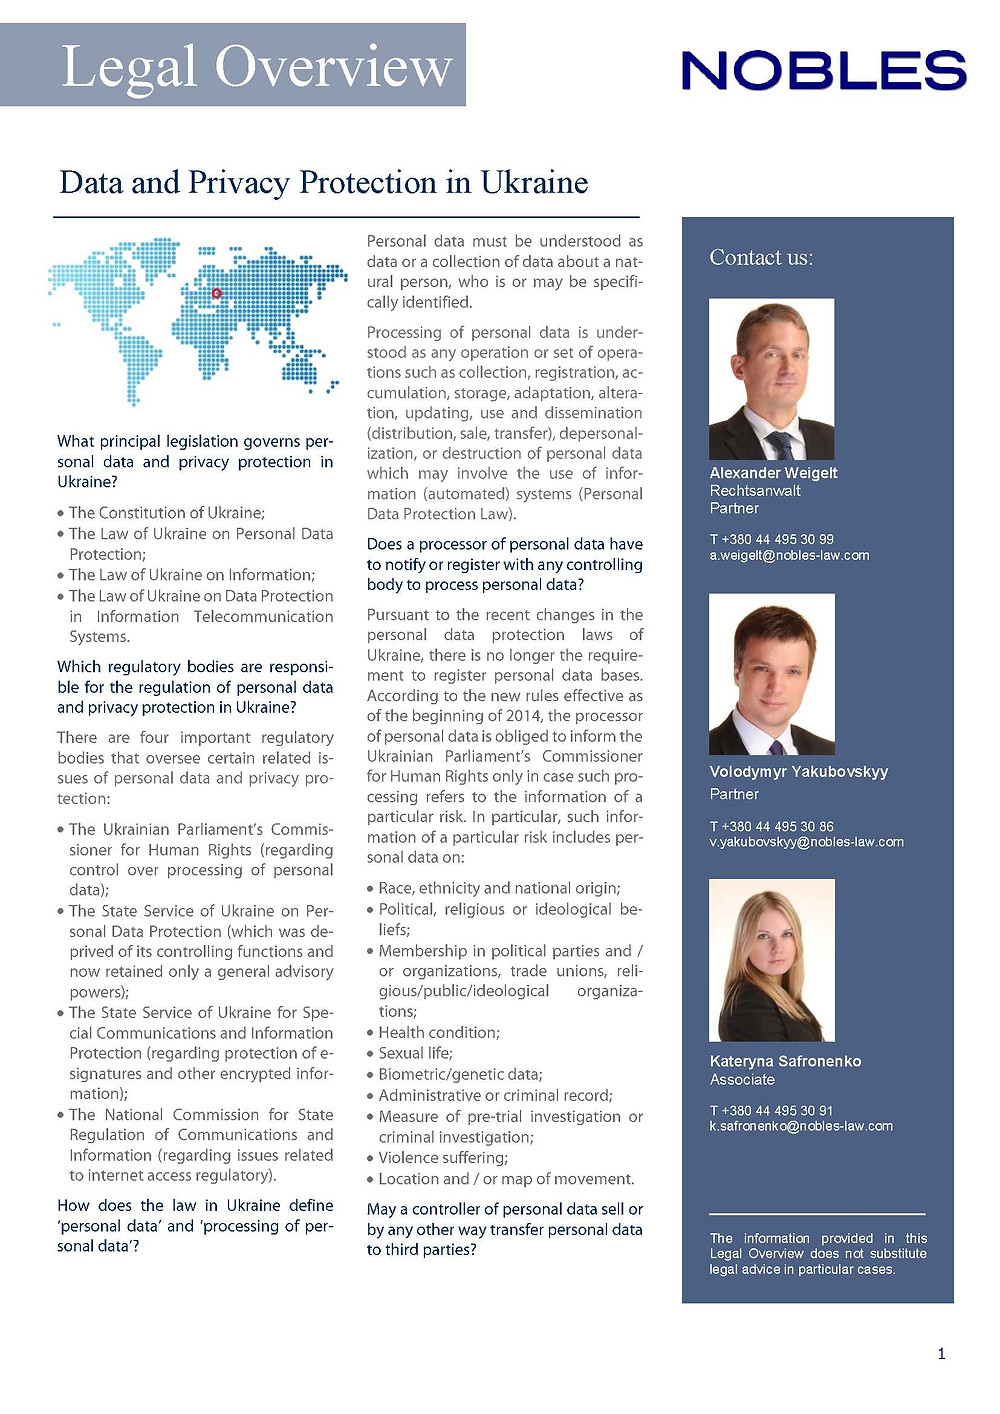 Nobles _Legal overview Data Protection Ukraine_July 2014.jpg